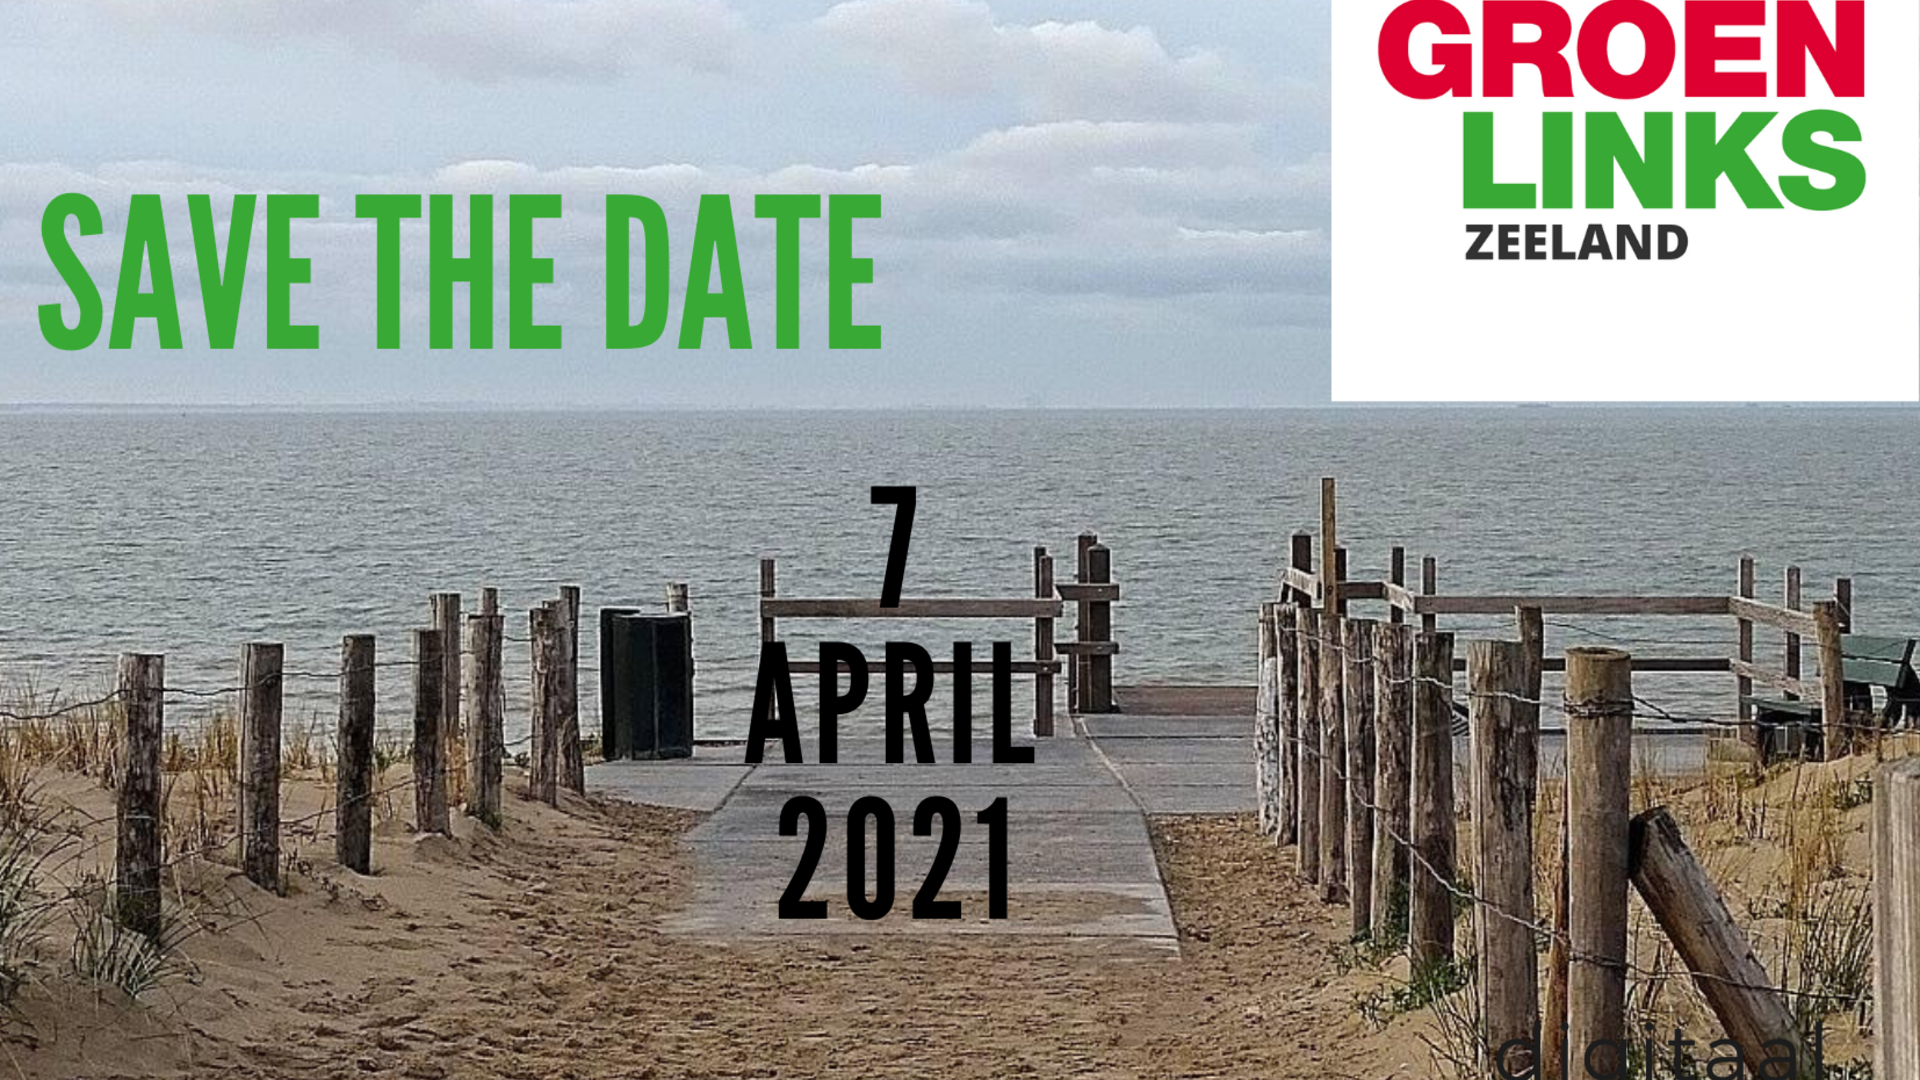 save the date 7 april